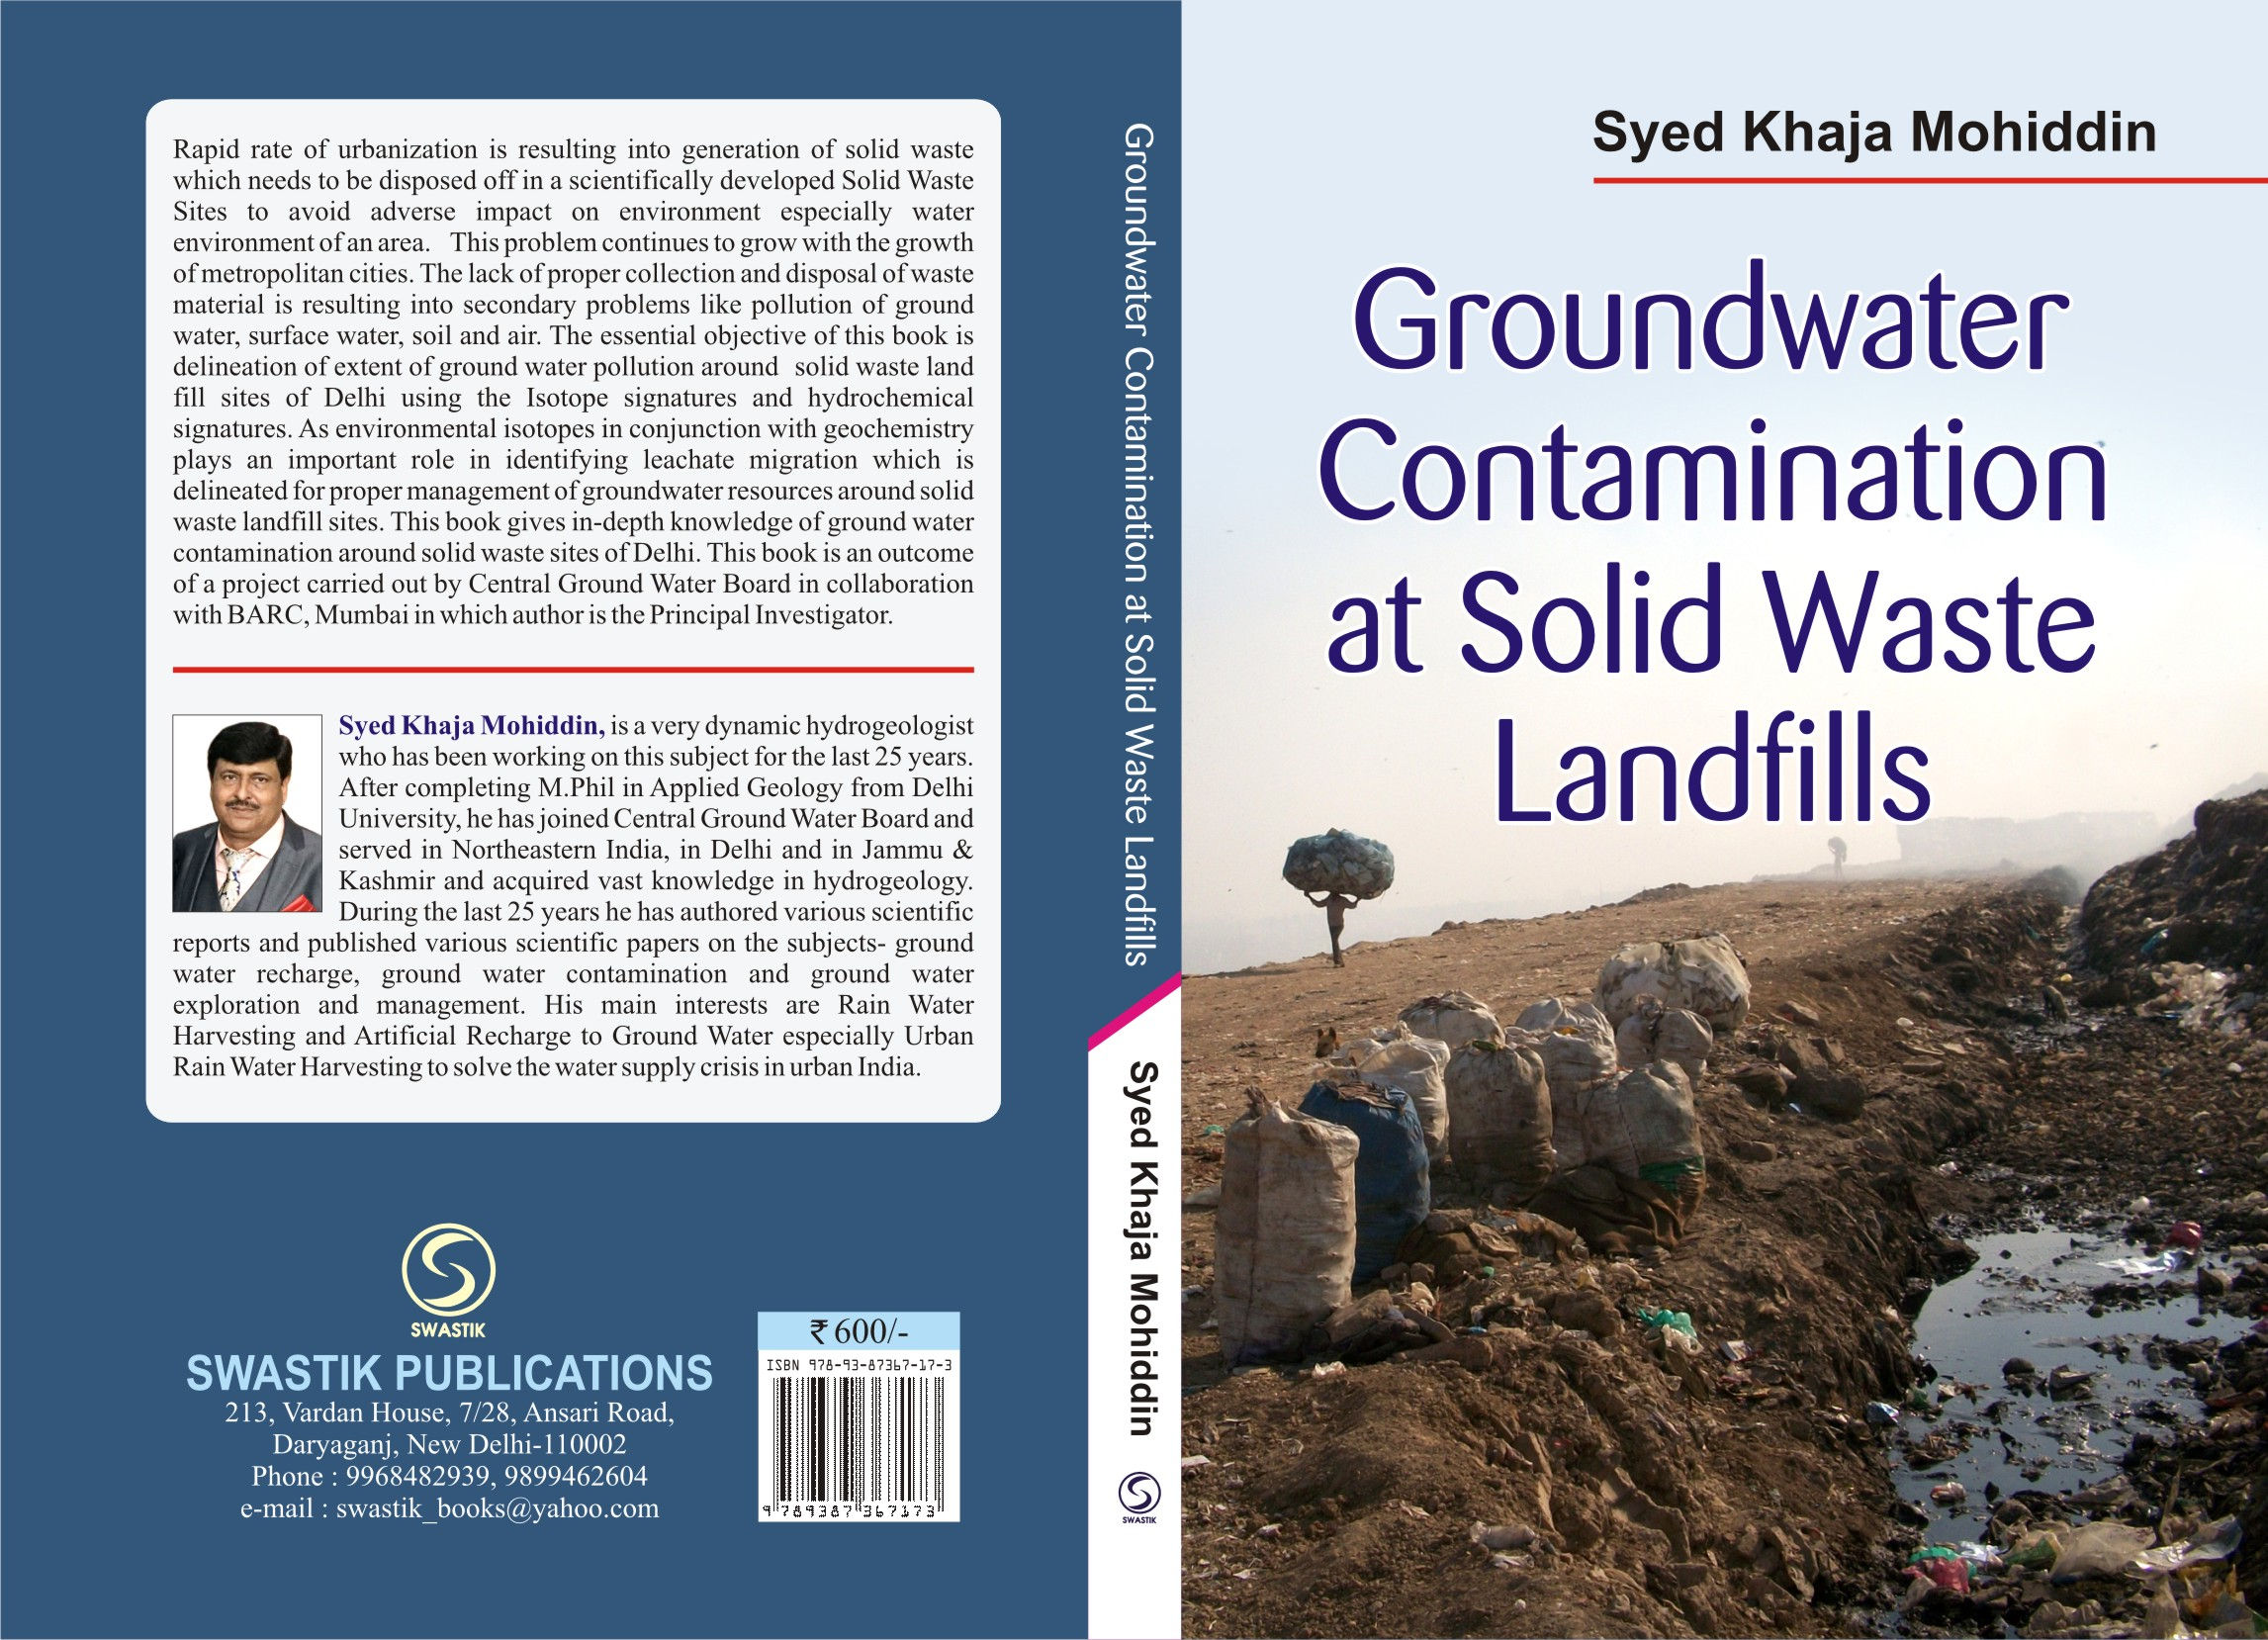 Ground Water Contamination at Solid Waste Landfills